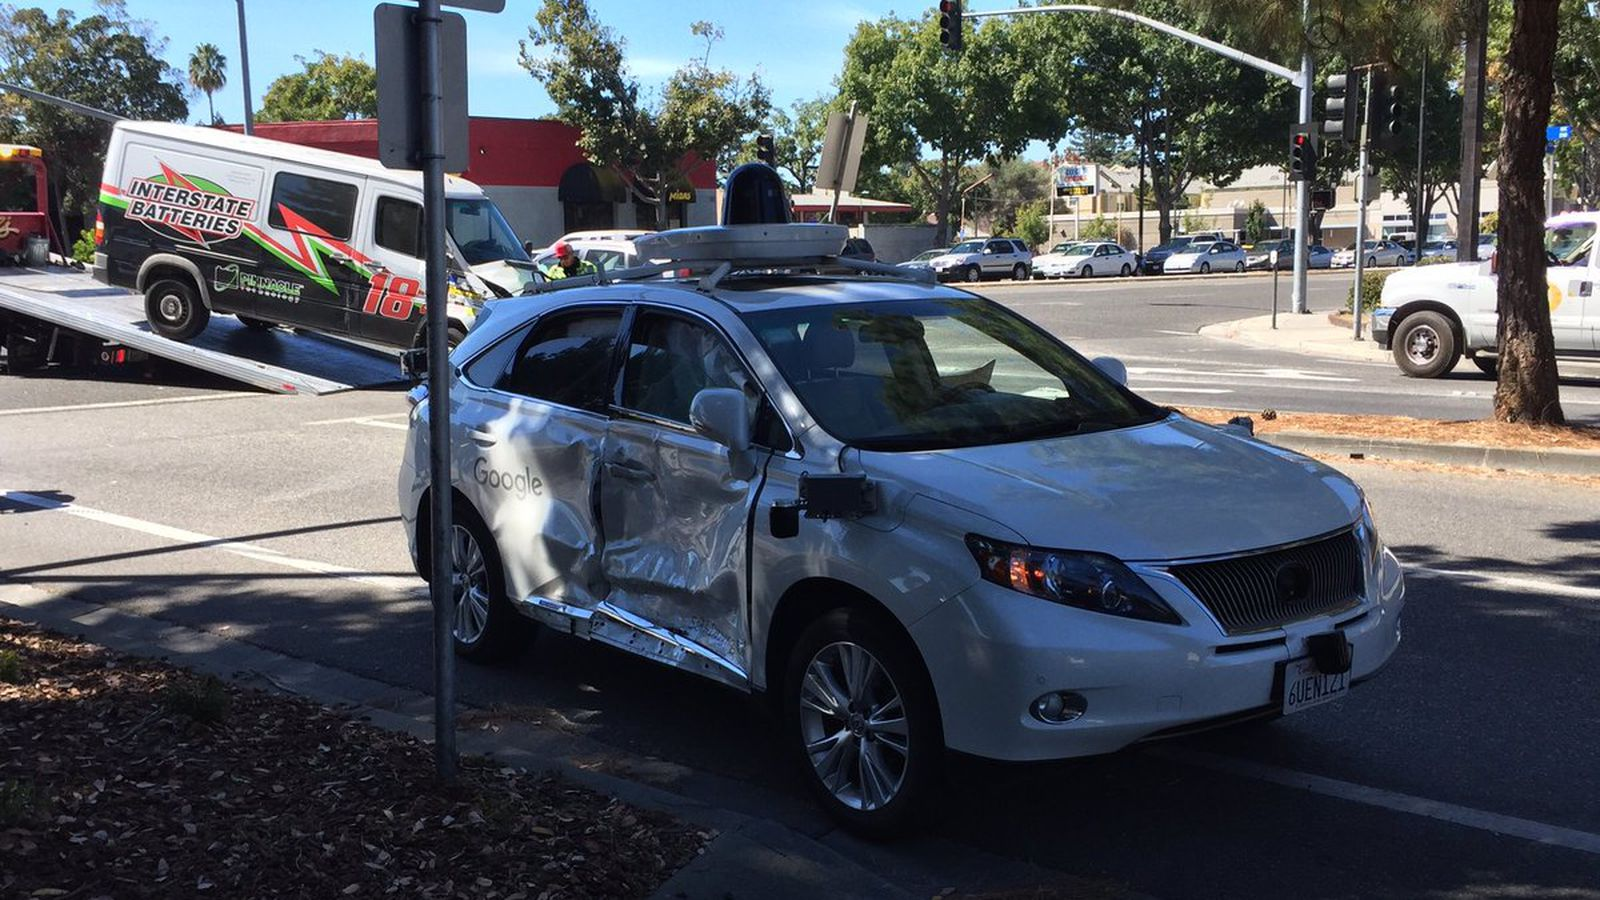 Google's 'worst' self-driving accident was still a human's fault - The Verge